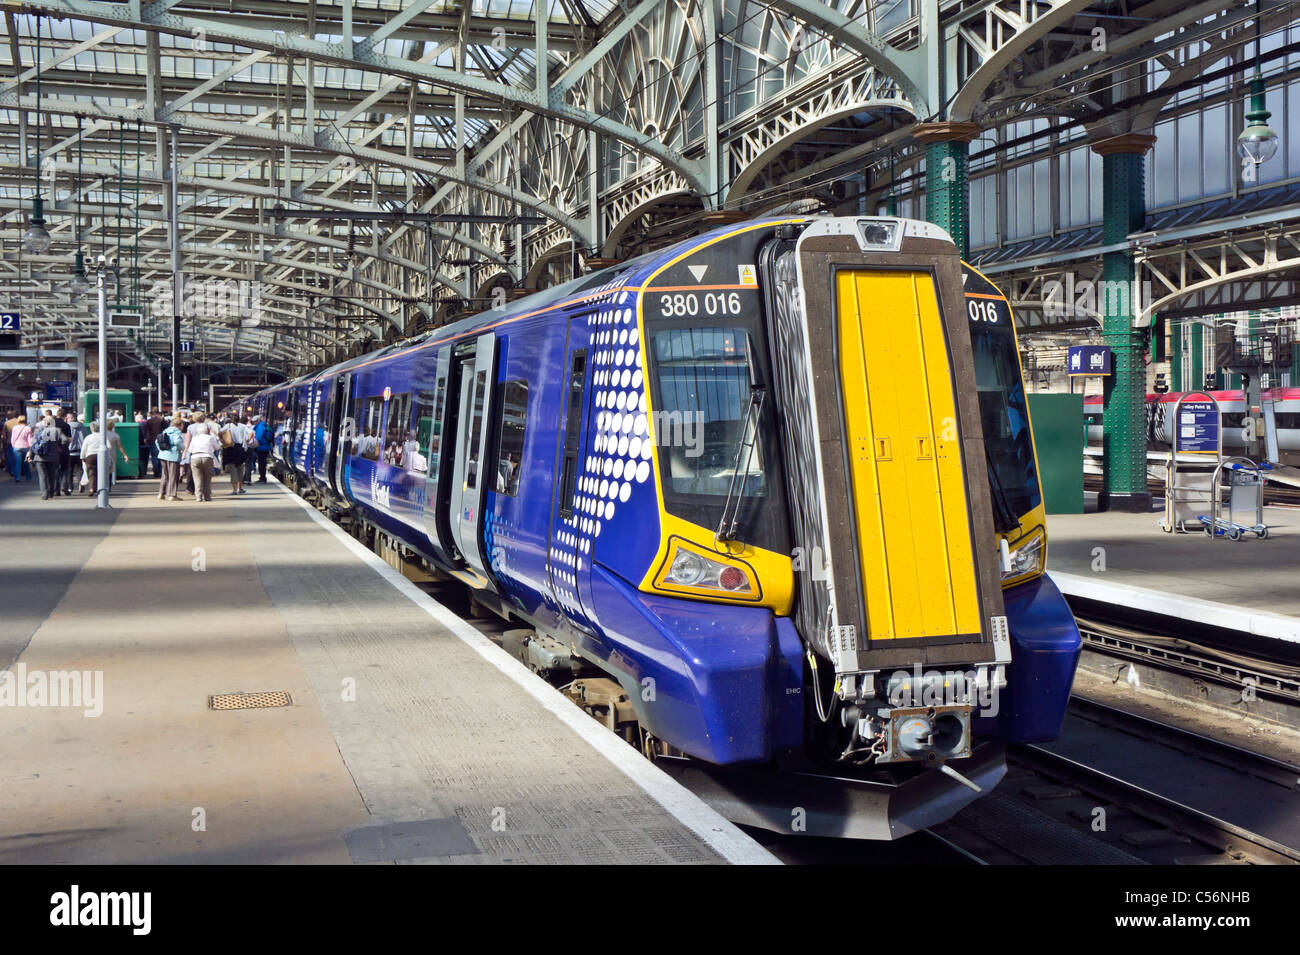 New Scotrail Class 380 EMU in Glasgow Central Station - Stock Image